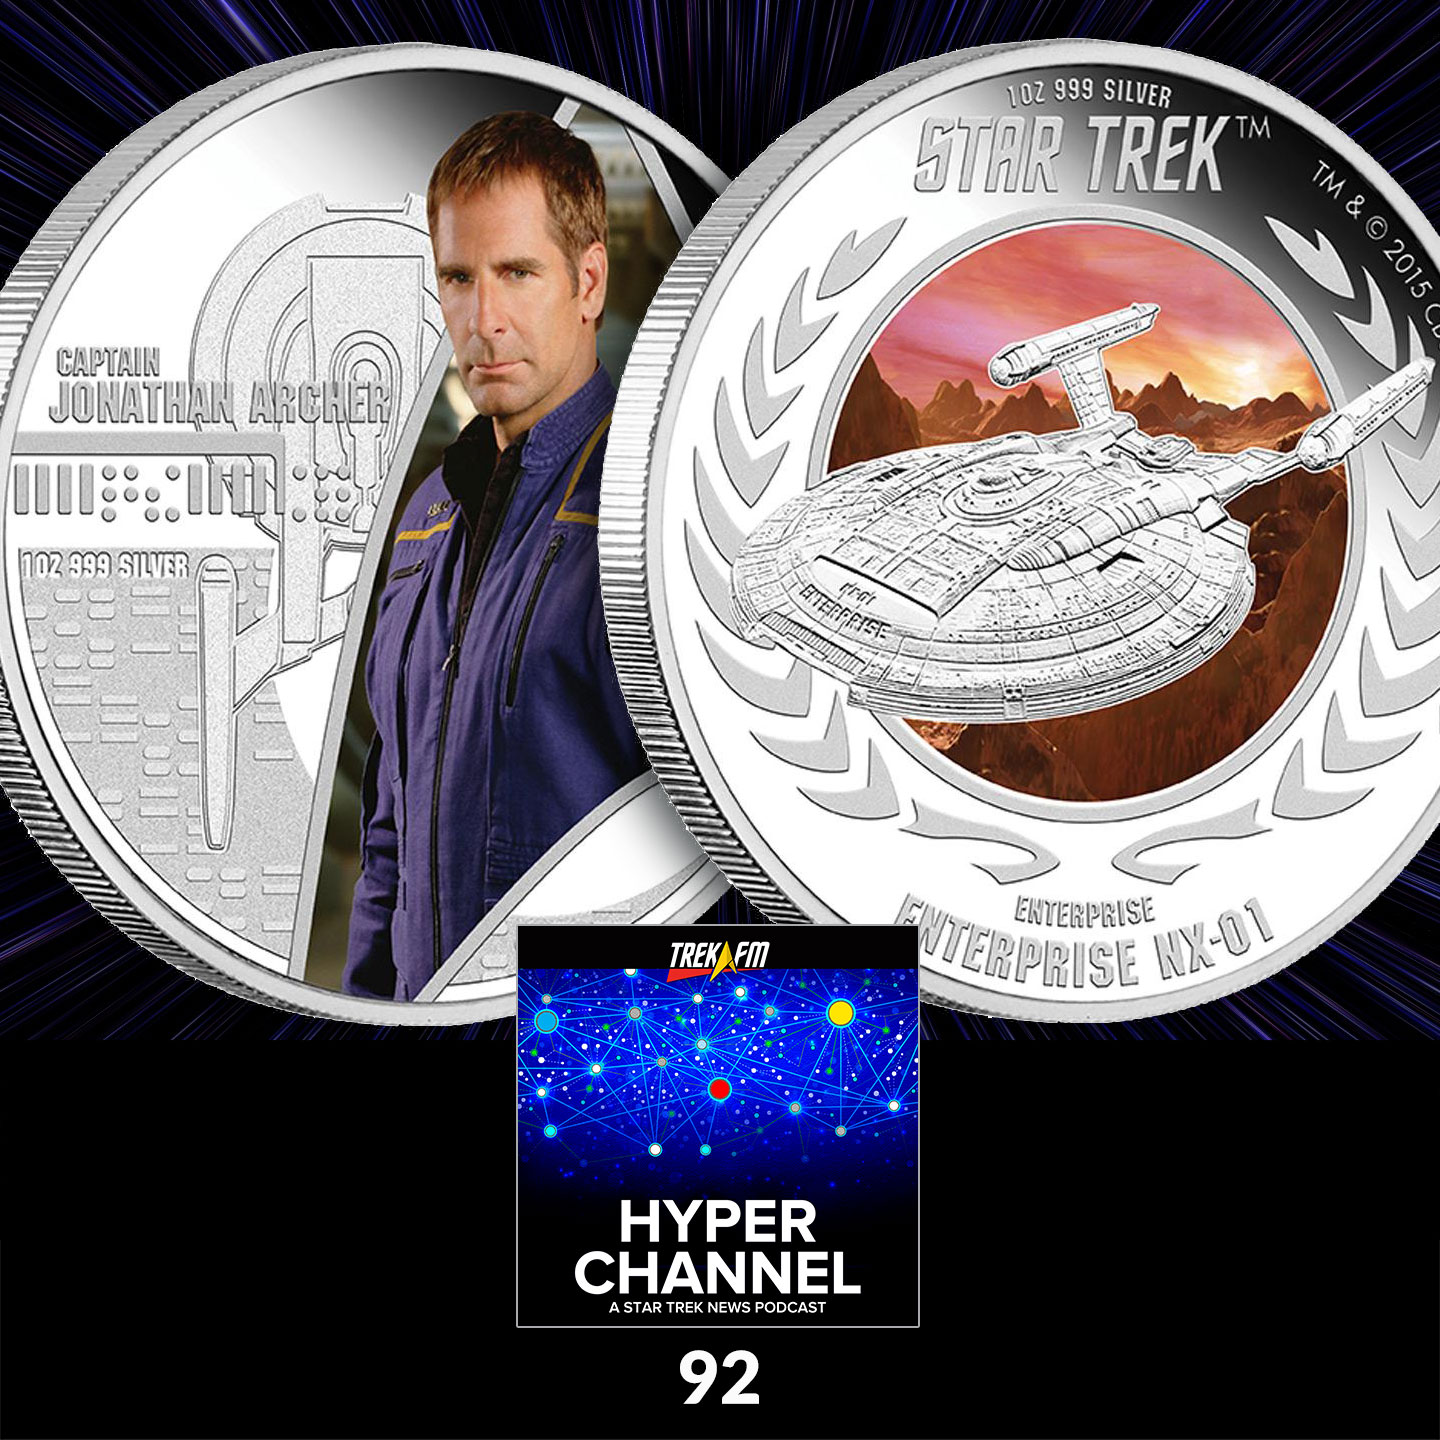 Hyperchannel 92: Silver-Pressed Latinum